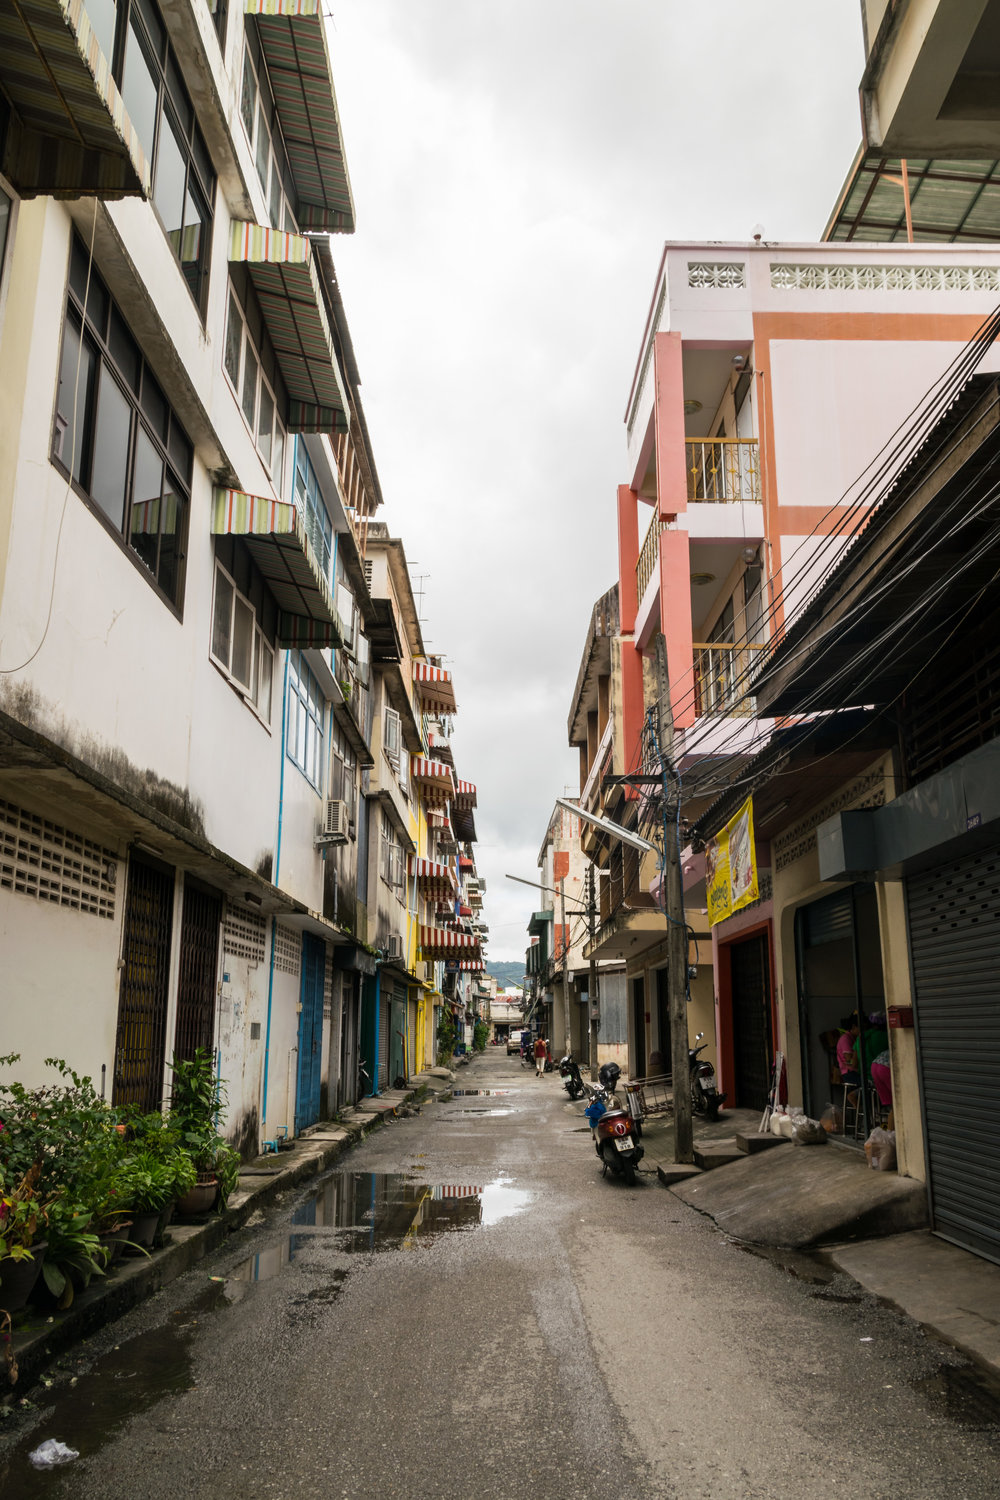 typical alleyway in Phuket, Thailand